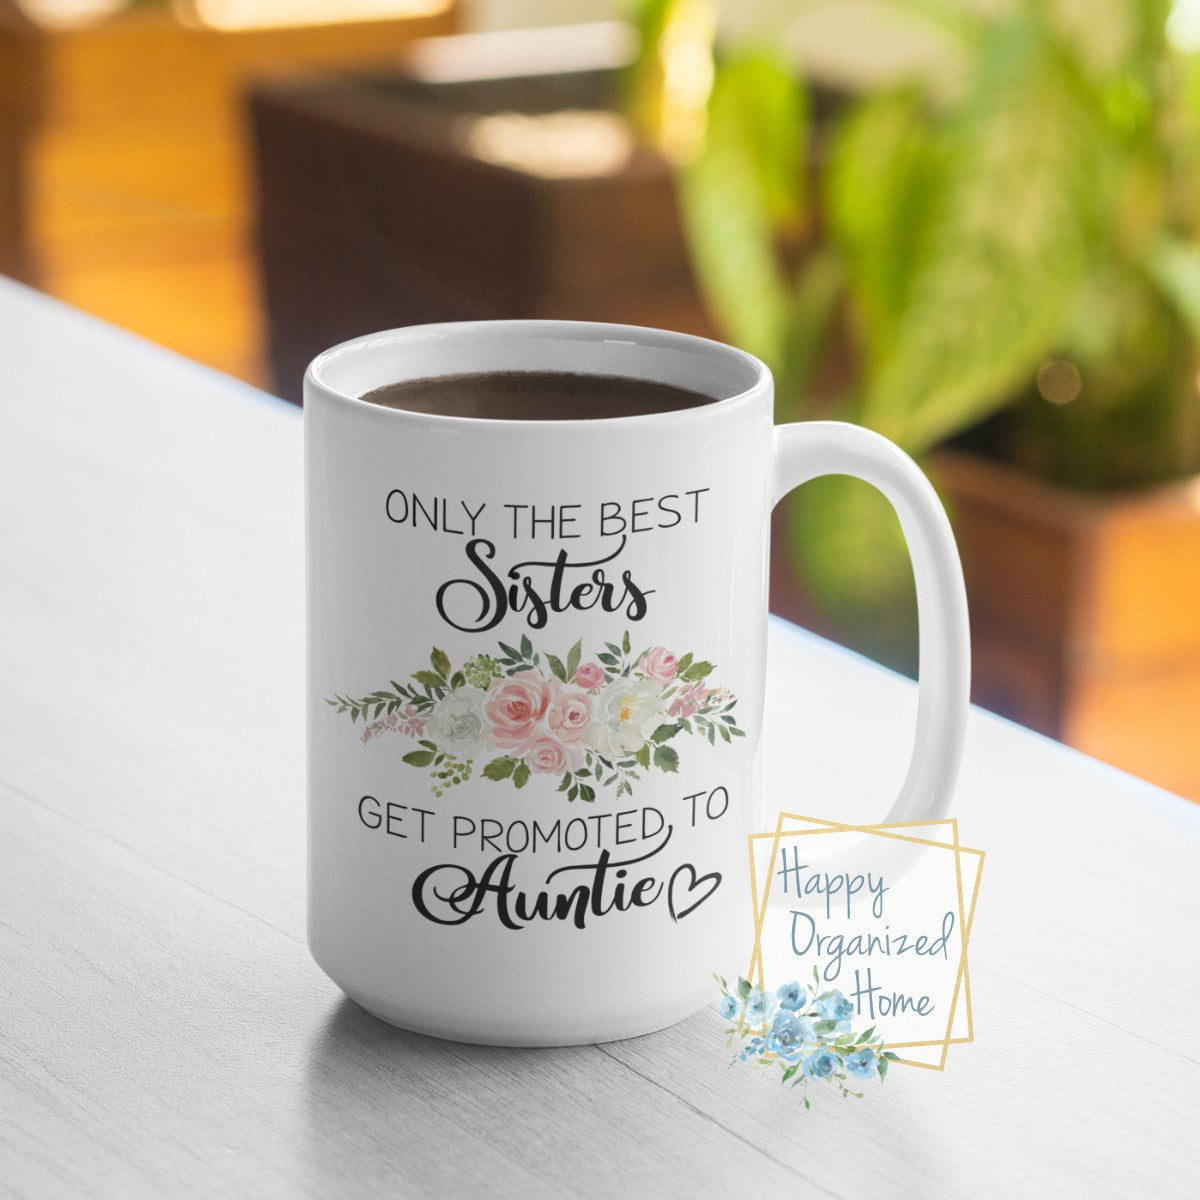 Only the best Sisters get promoted to Auntie - coffee Tea Mug